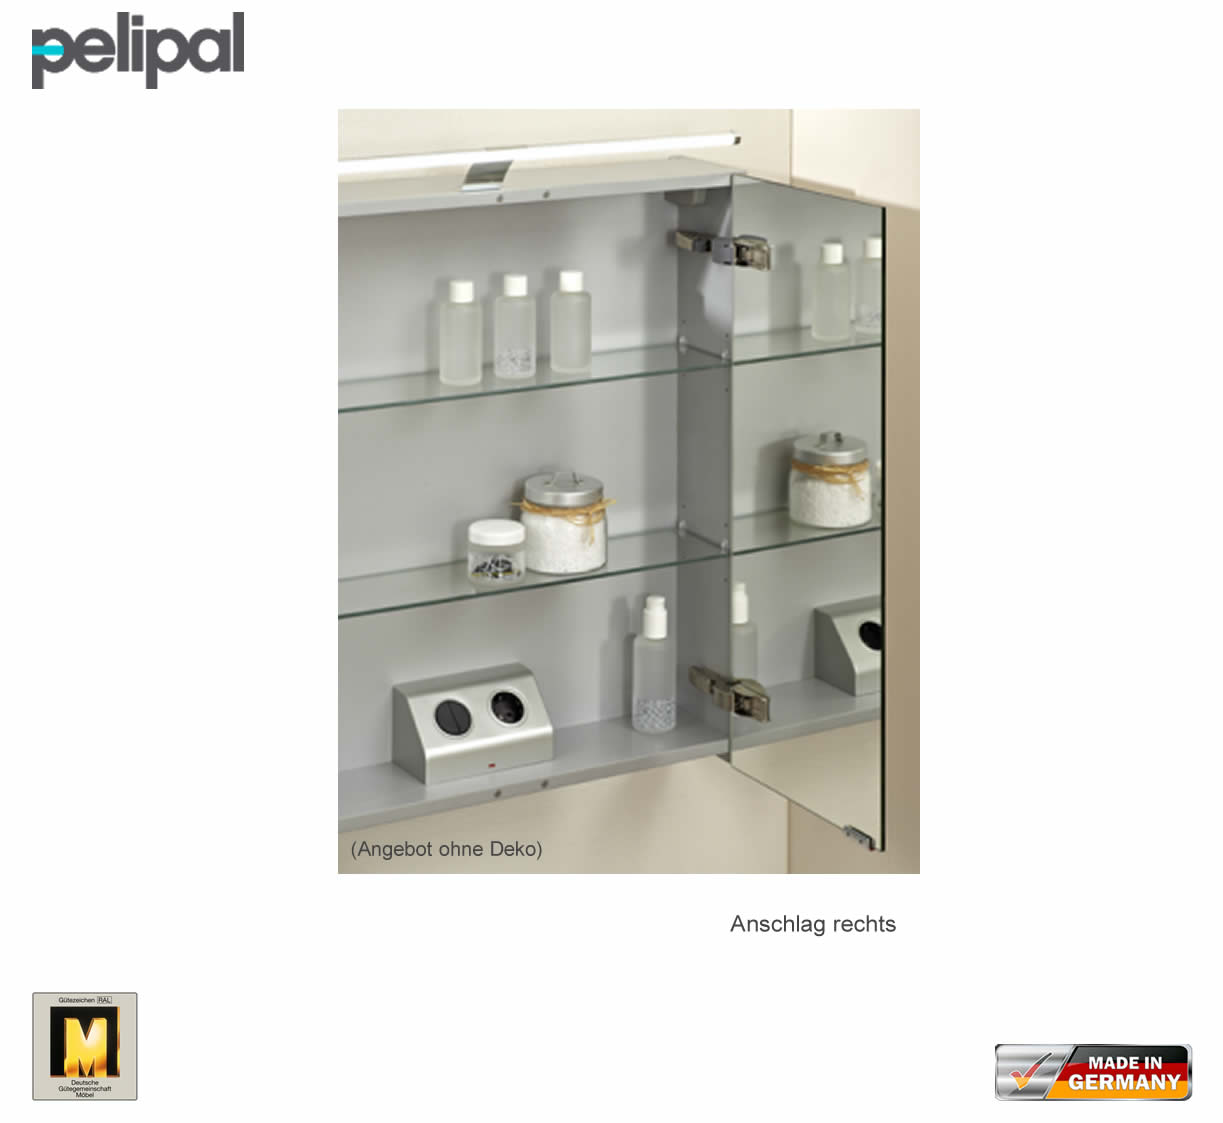 pelipal neutraler spiegelschrank s5 60 cm mit led aufbauleuchte impulsbad. Black Bedroom Furniture Sets. Home Design Ideas